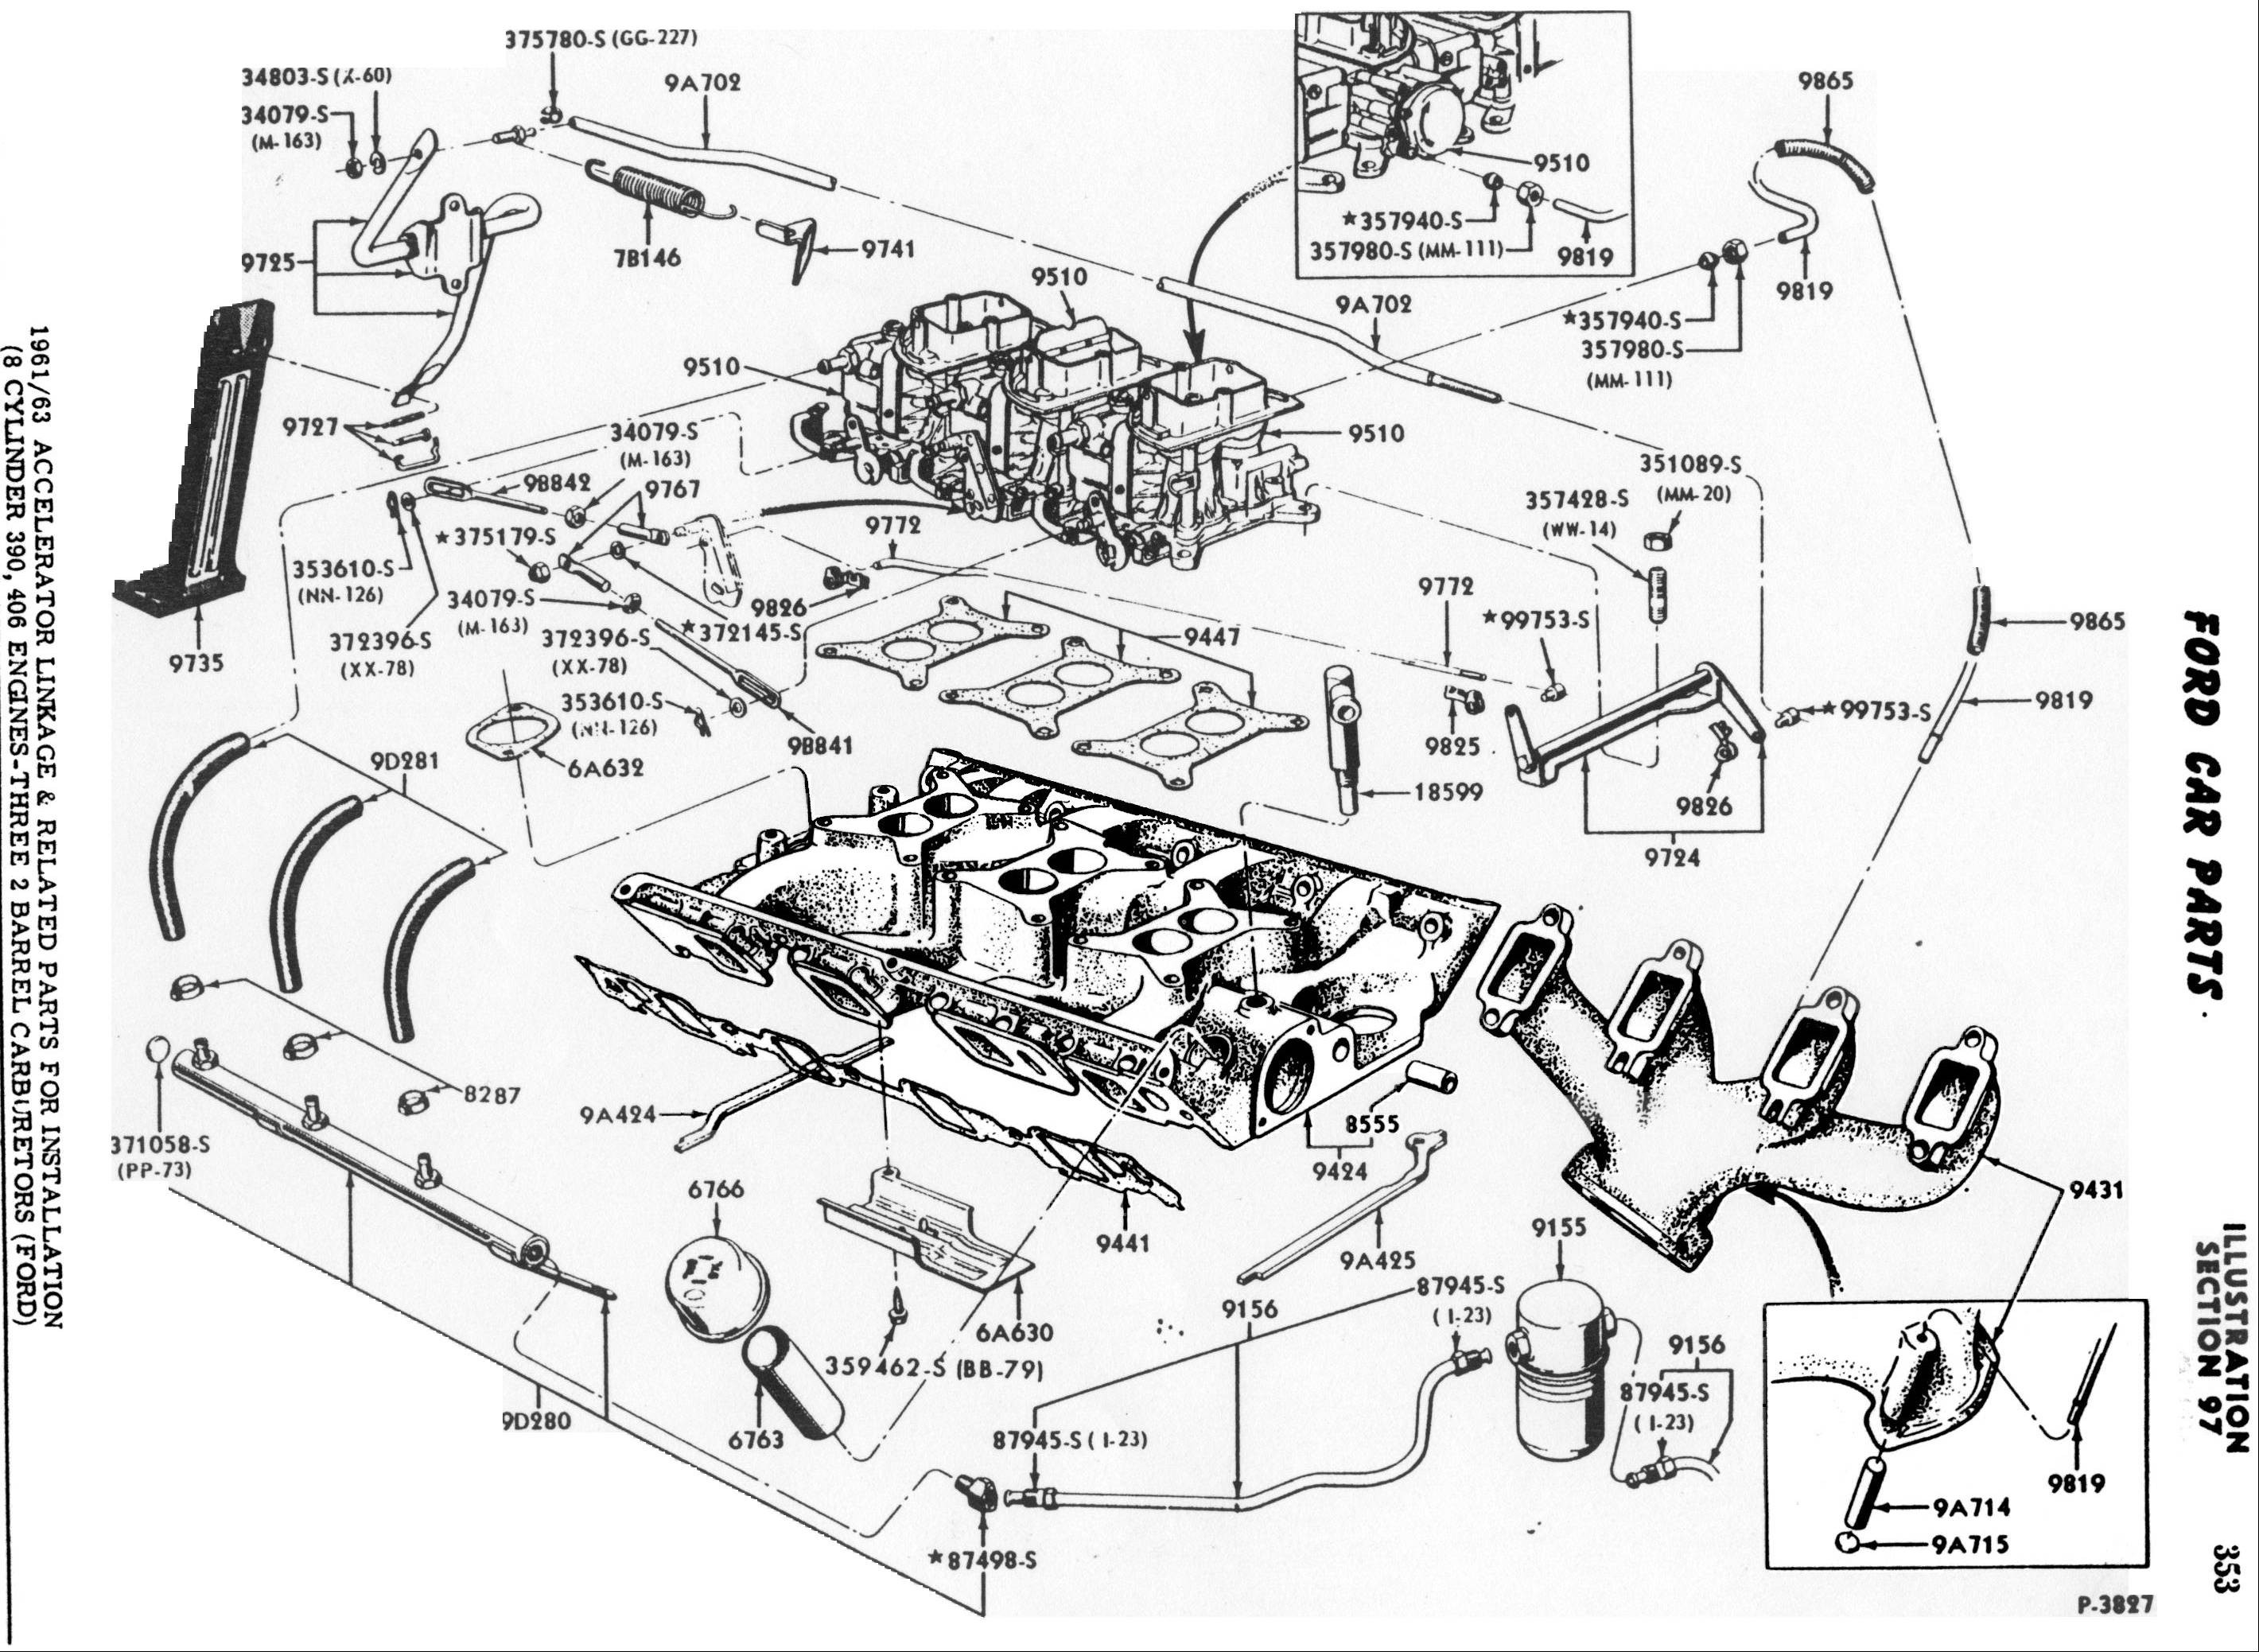 2006 Dodge Charger Engine Diagram 460 ford Engine Diagram Wiring Info • Of 2006 Dodge Charger Engine Diagram